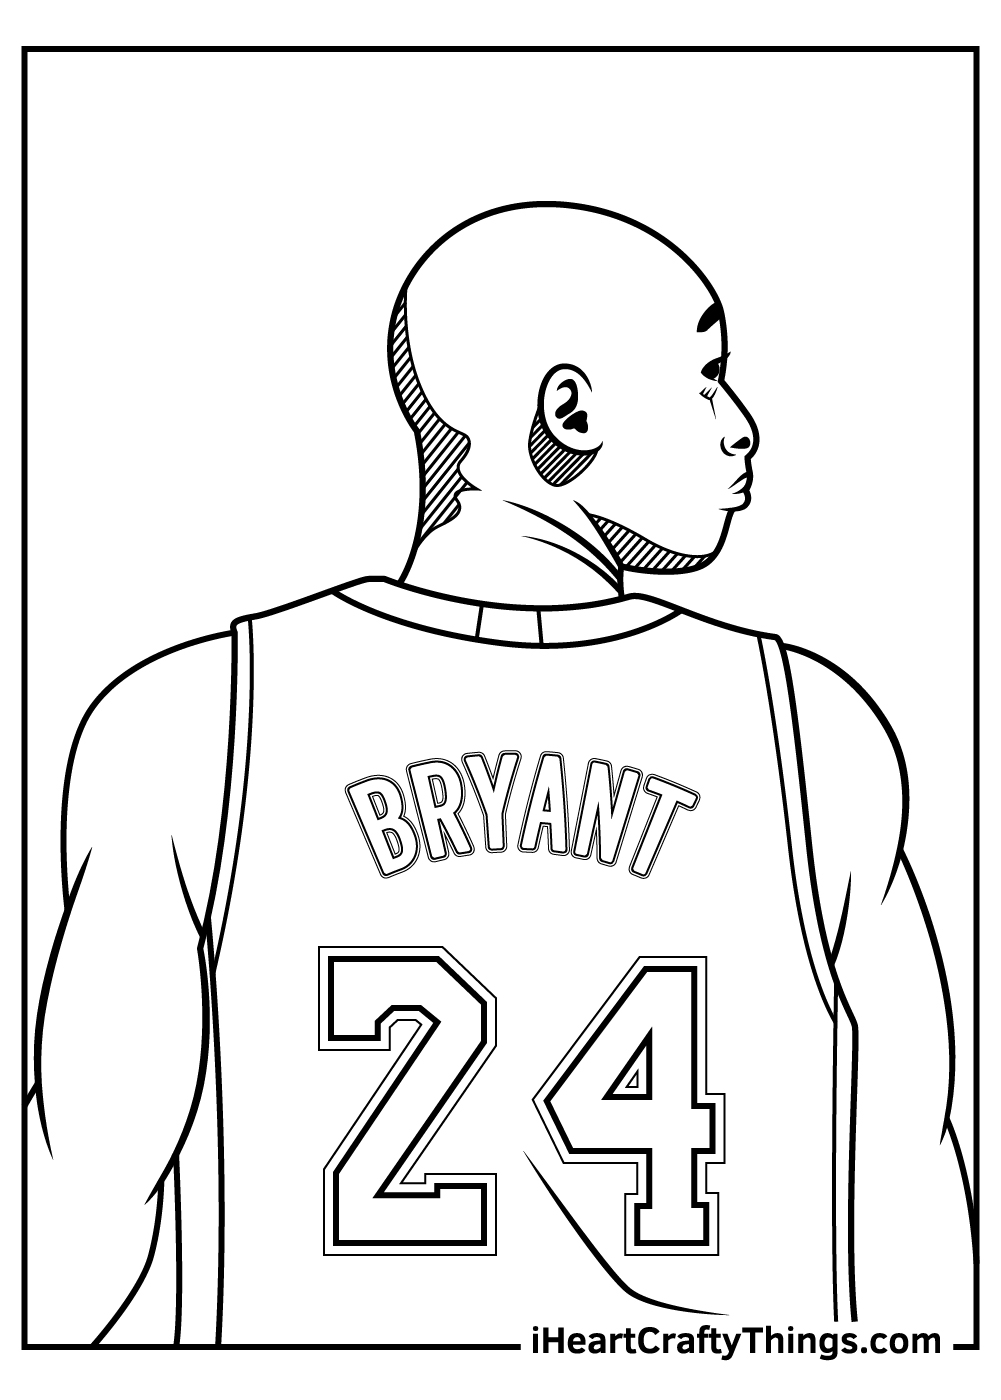 Kobe Bryant Lakers Coloring Pages pdf